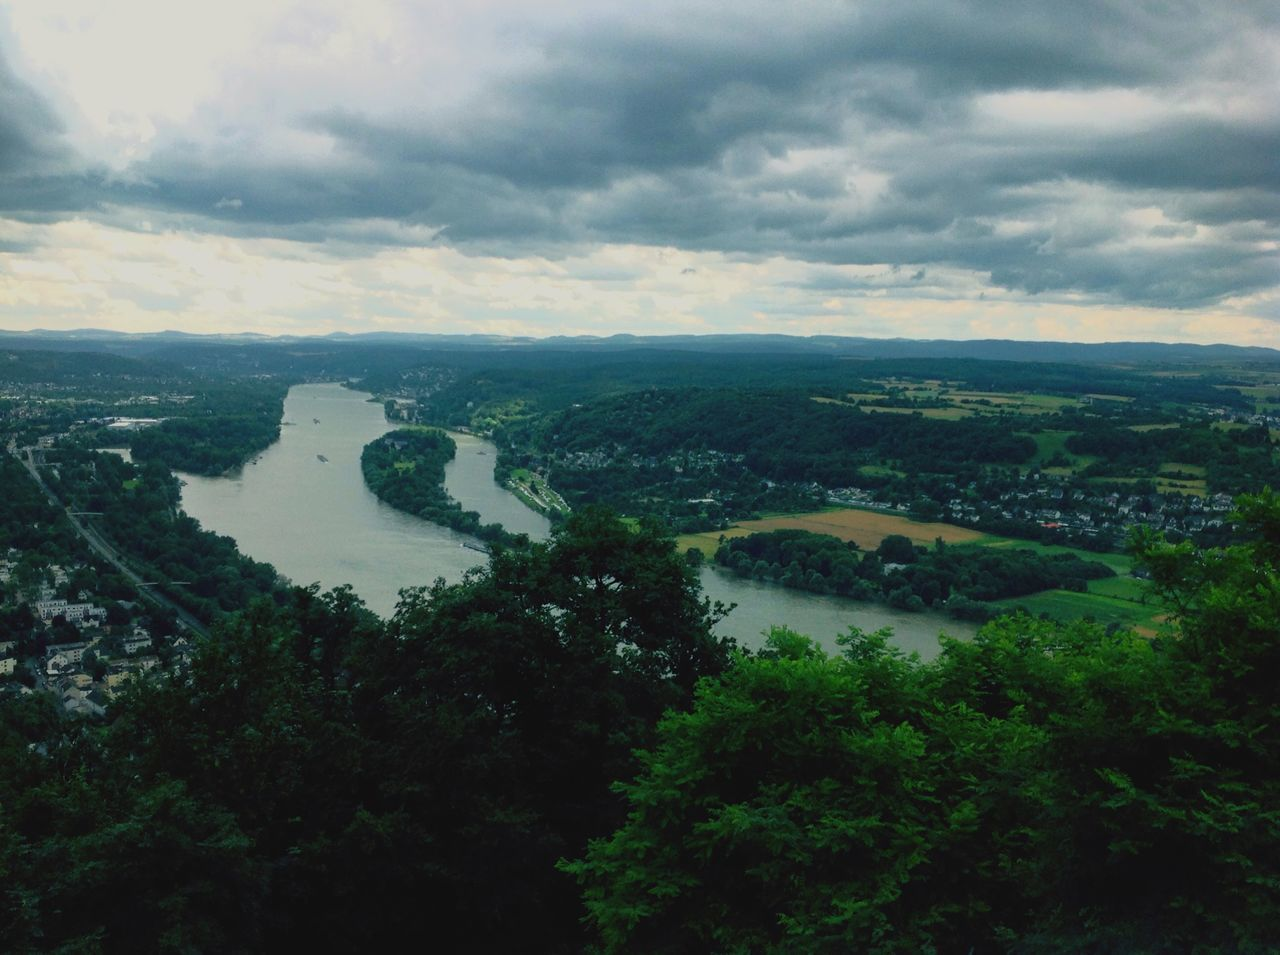 Rhein Drachenfels Siebengebirge Nature River Bonn Germany GERMANY🇩🇪DEUTSCHERLAND@ Beautiful Beauty In Nature Grass Mountains Hills North Rhine Westfalia View From Above View View From The Top Viewpoint